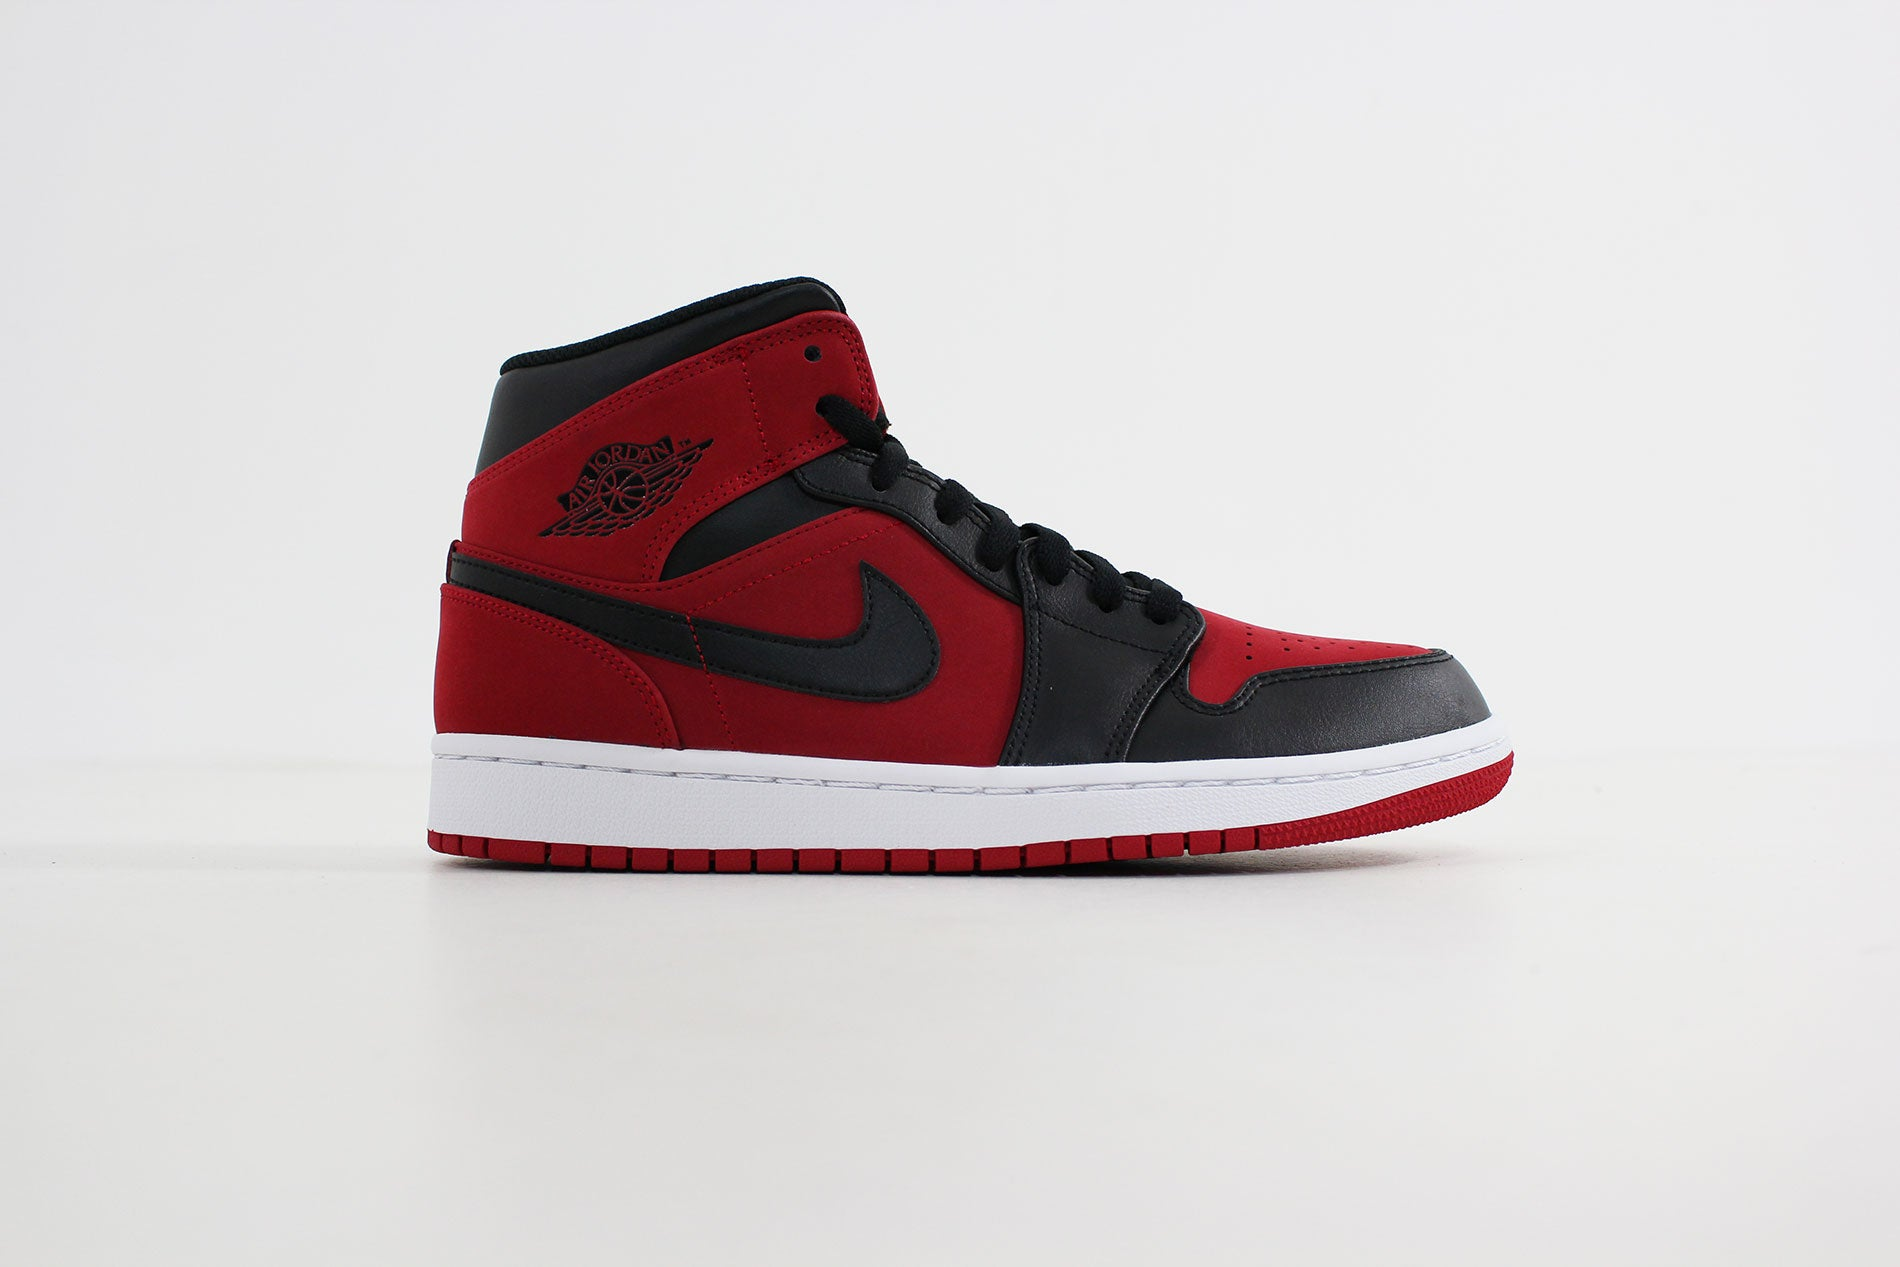 84917a61cce5 Nike - Air Jordan 1 MID (Gym Red  Black-White) 554724-610 - Sneakerworld